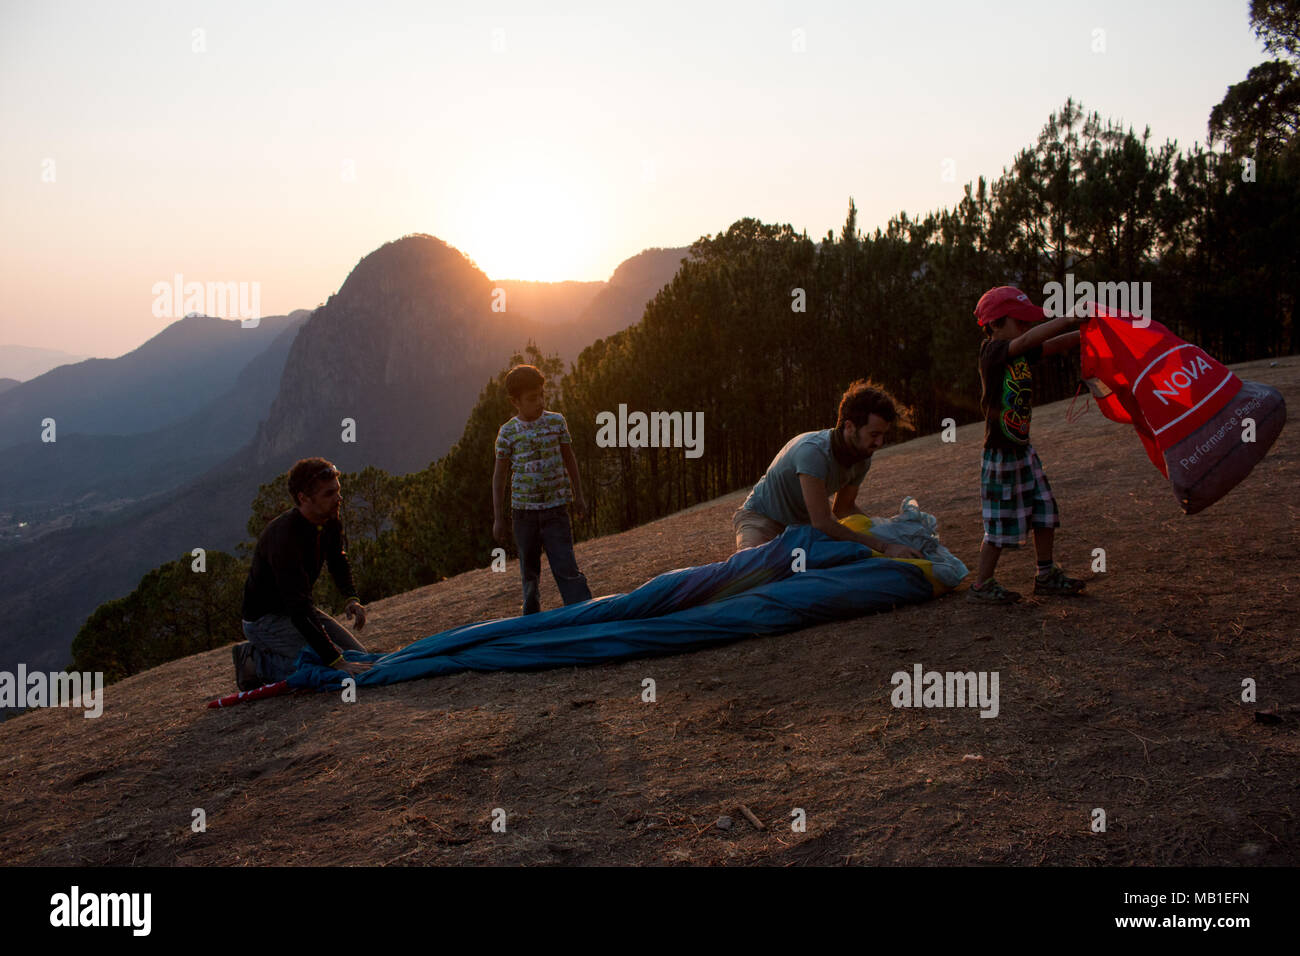 preparing for take off in El Penon, Mexico Stock Photo